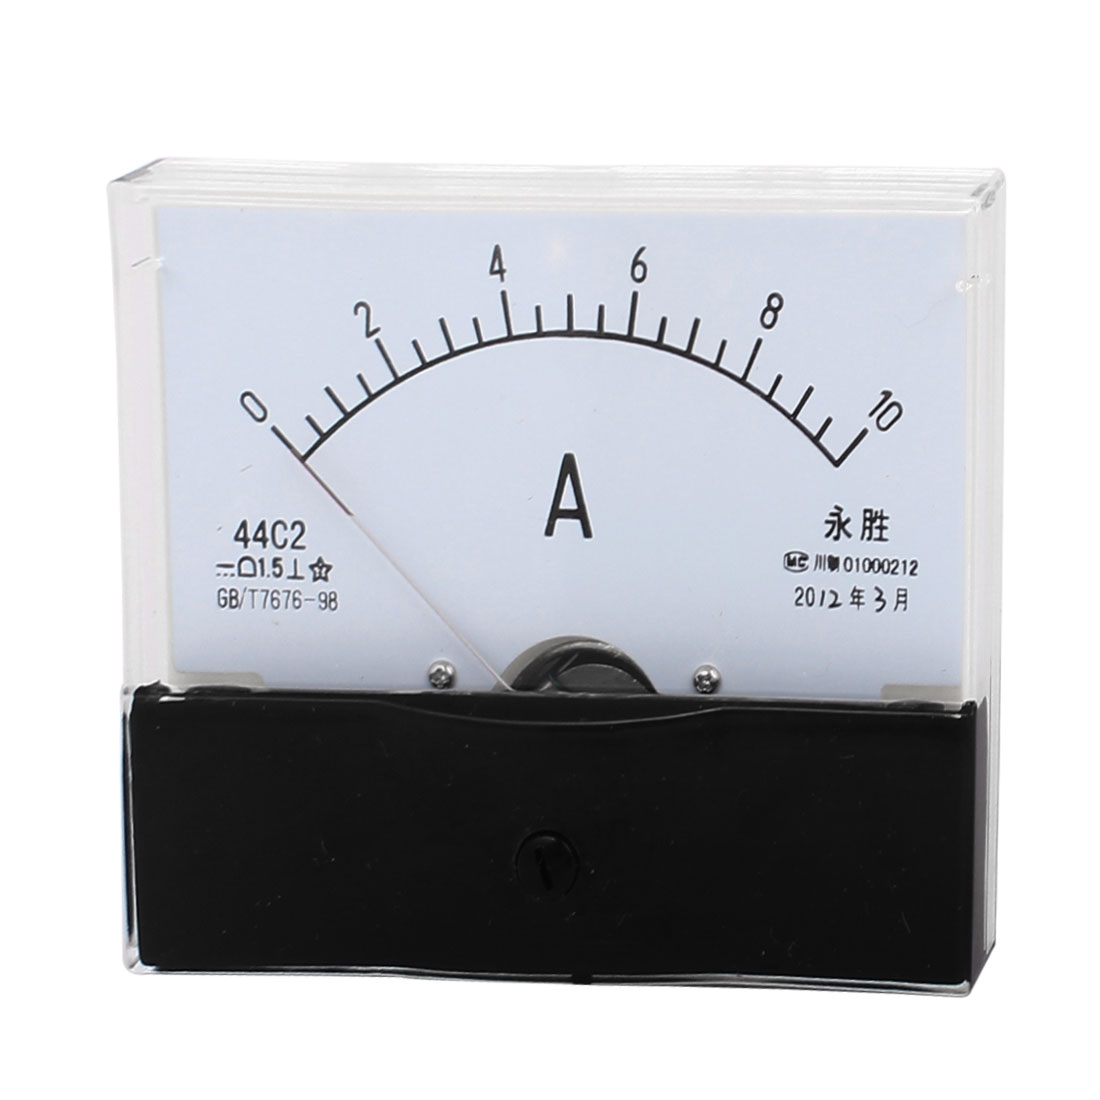 44C2 0-10A Class 1.5 Accuracy Square Shaped Vertical Mounted Analog Ammeter Ampere Meter